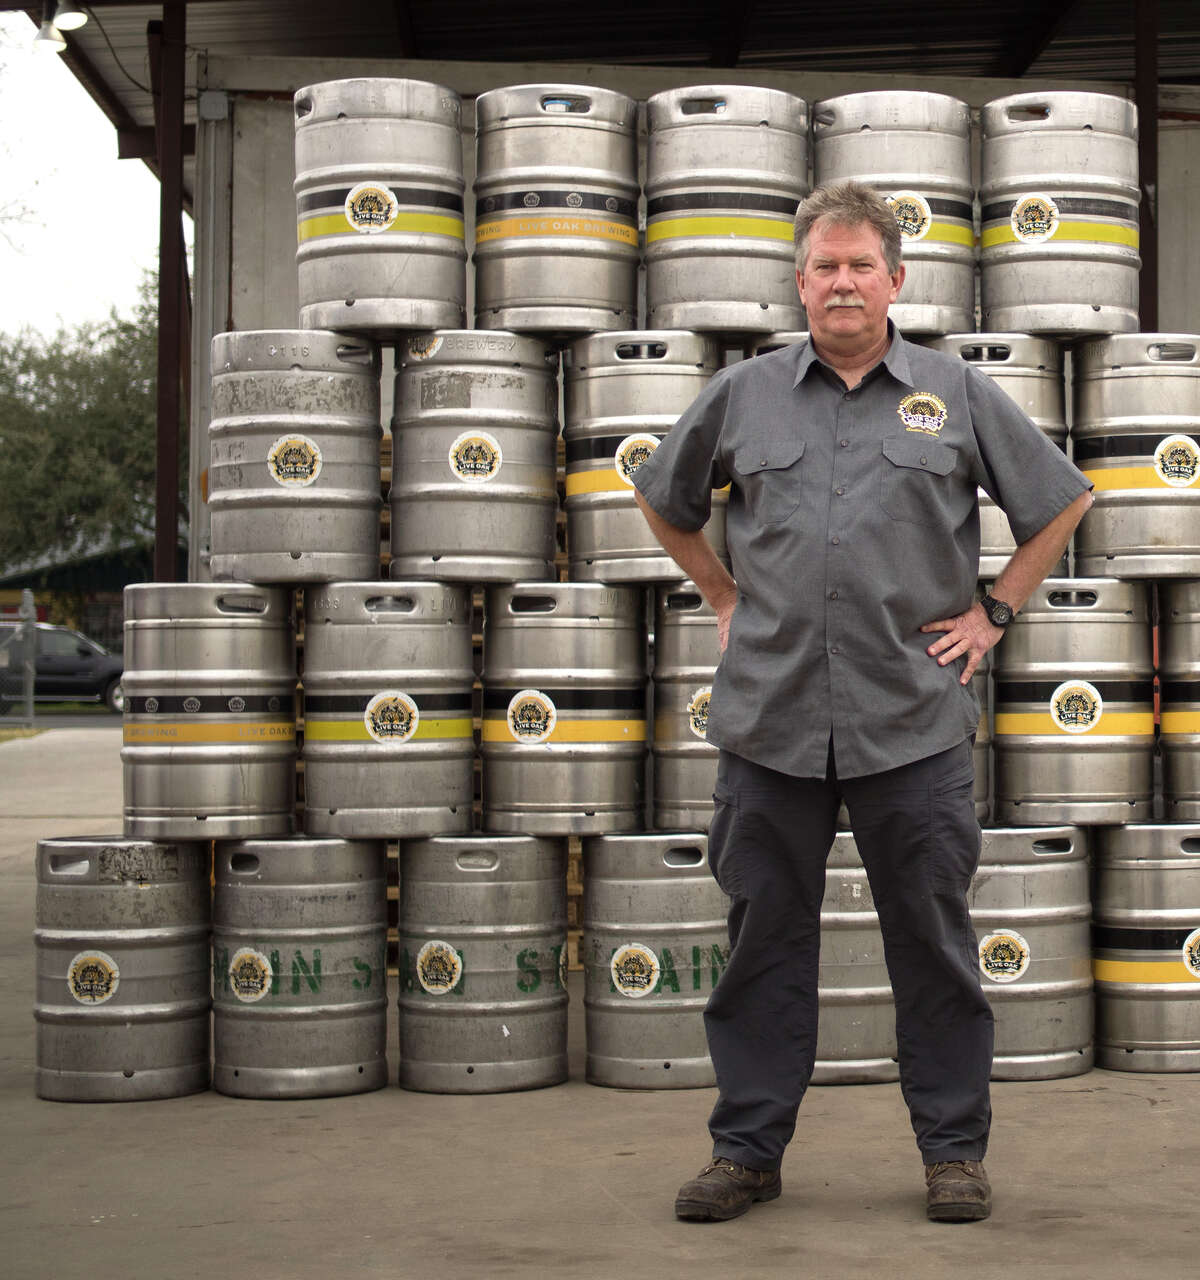 Live Oak Brewing Co. founder Chip McElroy of Austin is one of the plaintiffs in a lawsuit against the state over a 2013 law that he says unfairly favors distributors. Keep going to see some of the beers you may not have known are owned by the biggest names in booze.